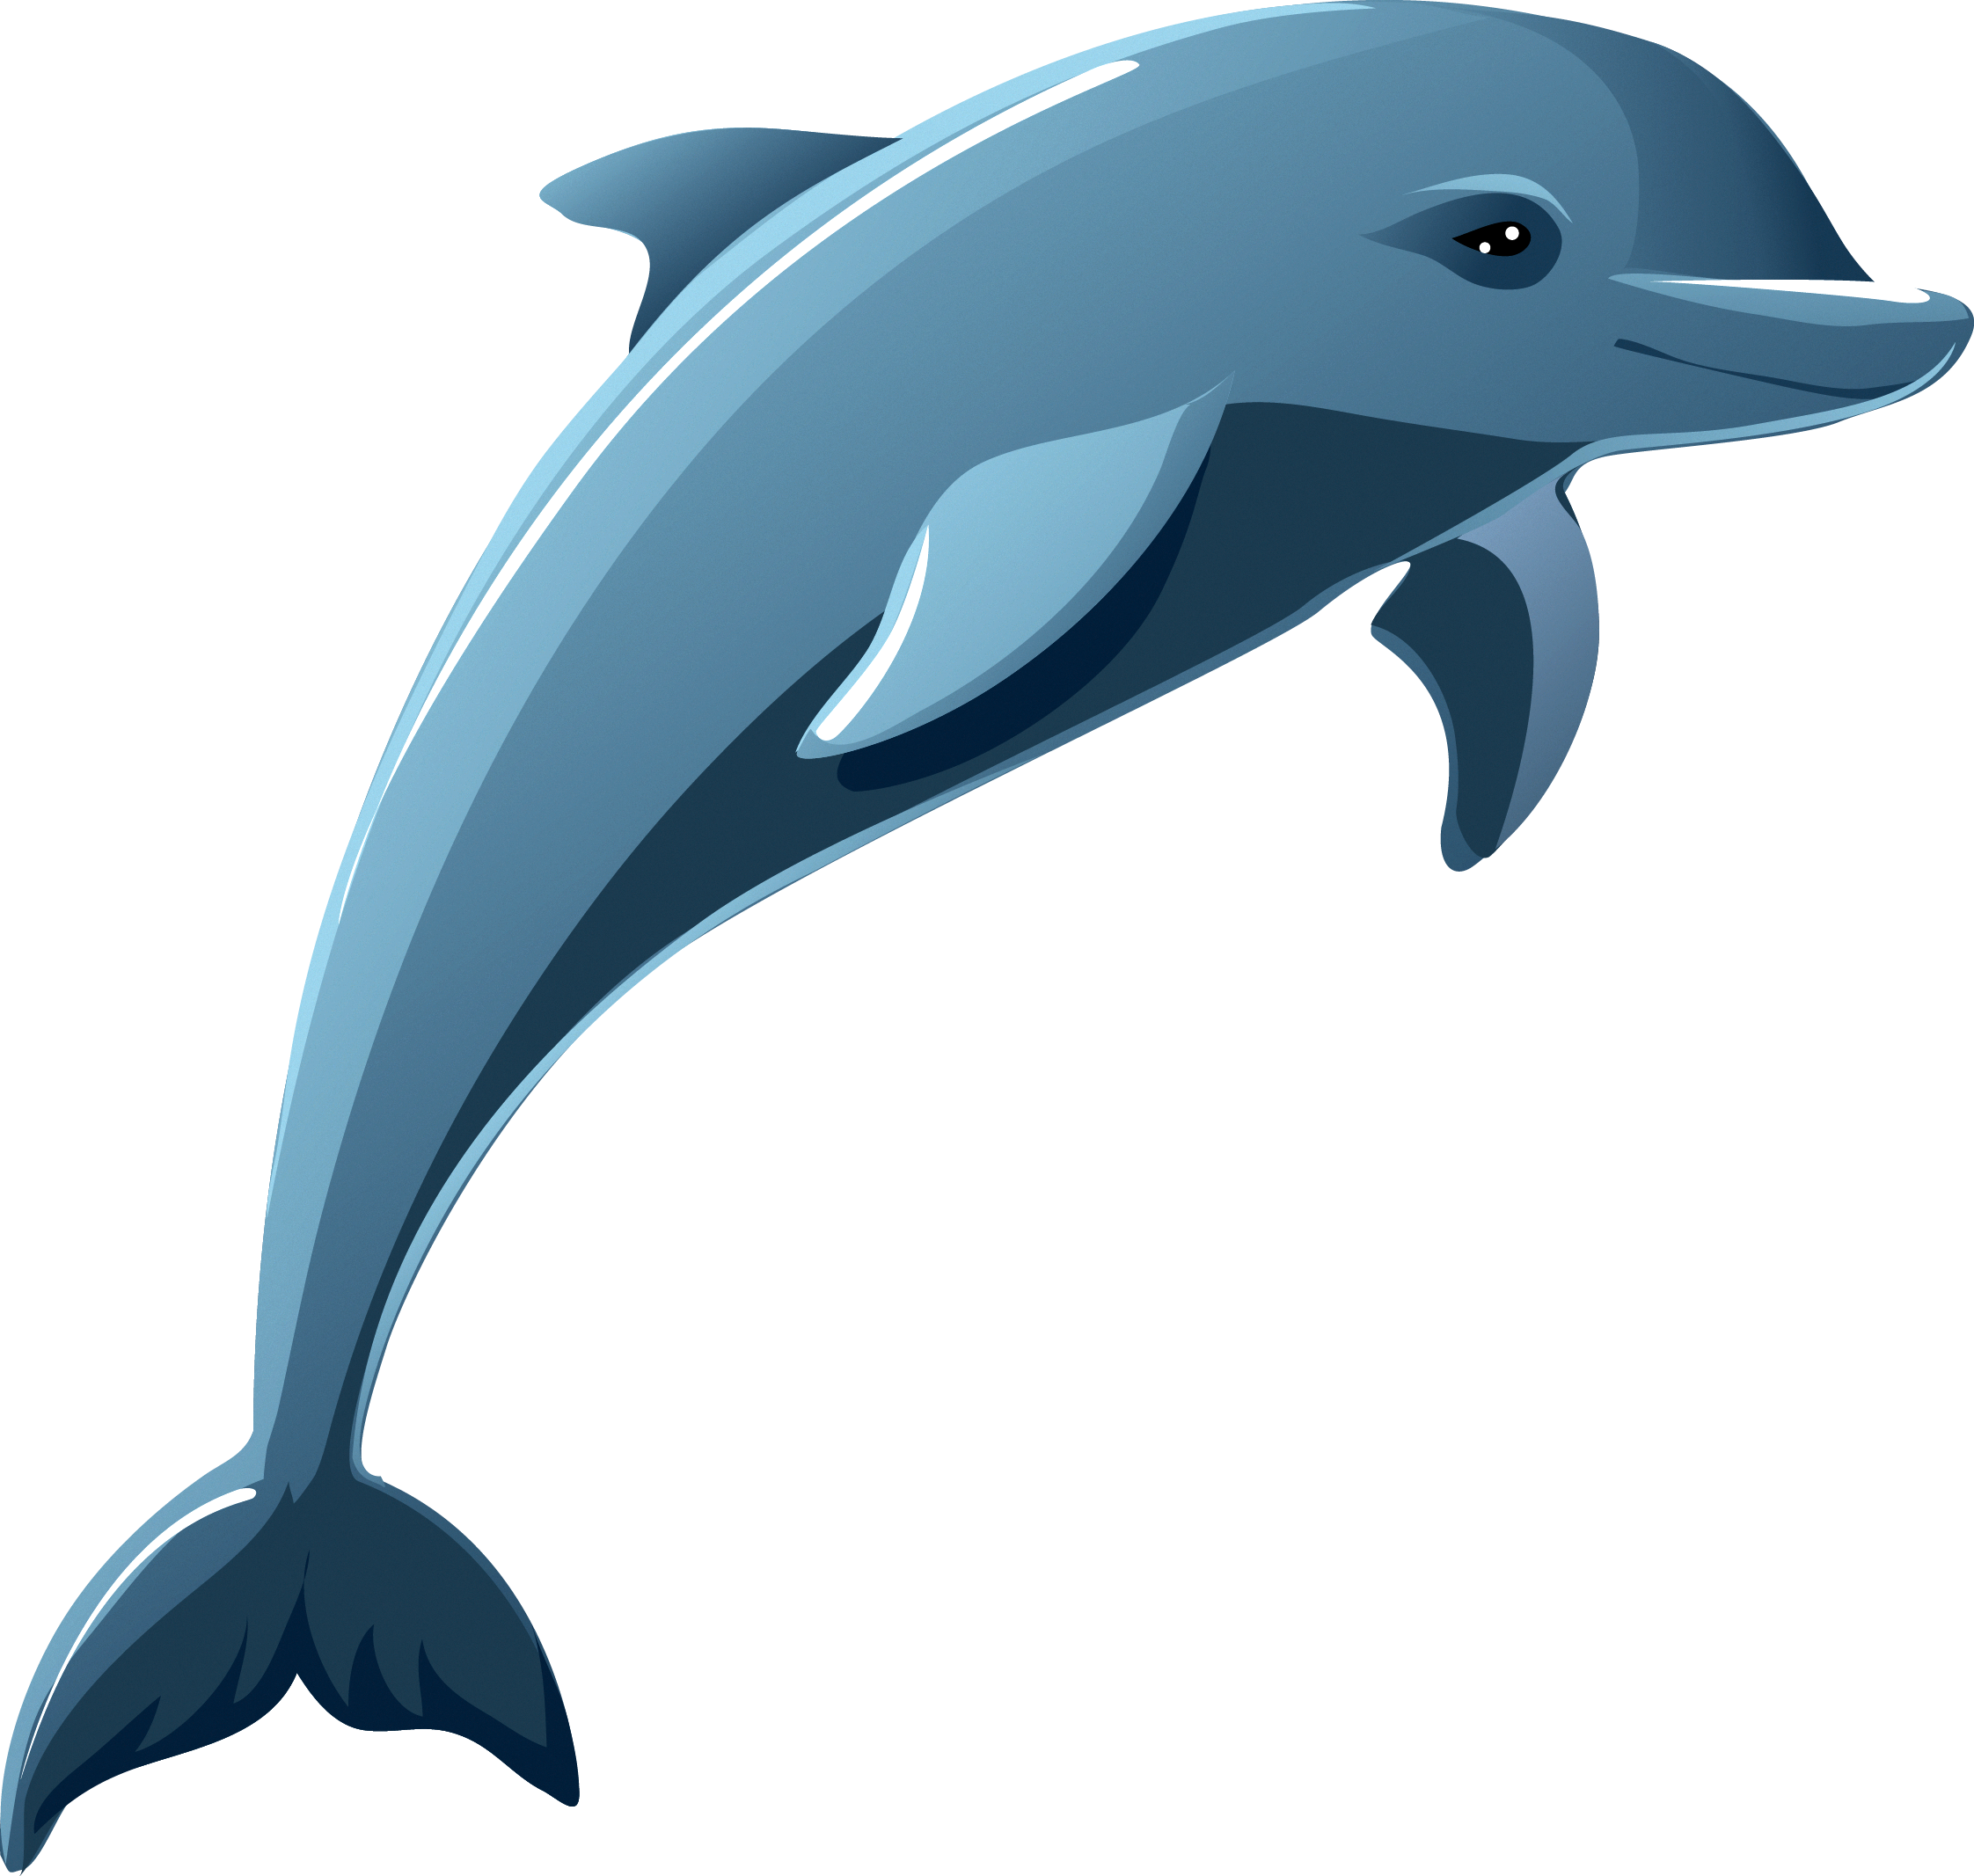 Stock photography clip art. Dolphins clipart bottlenose dolphin